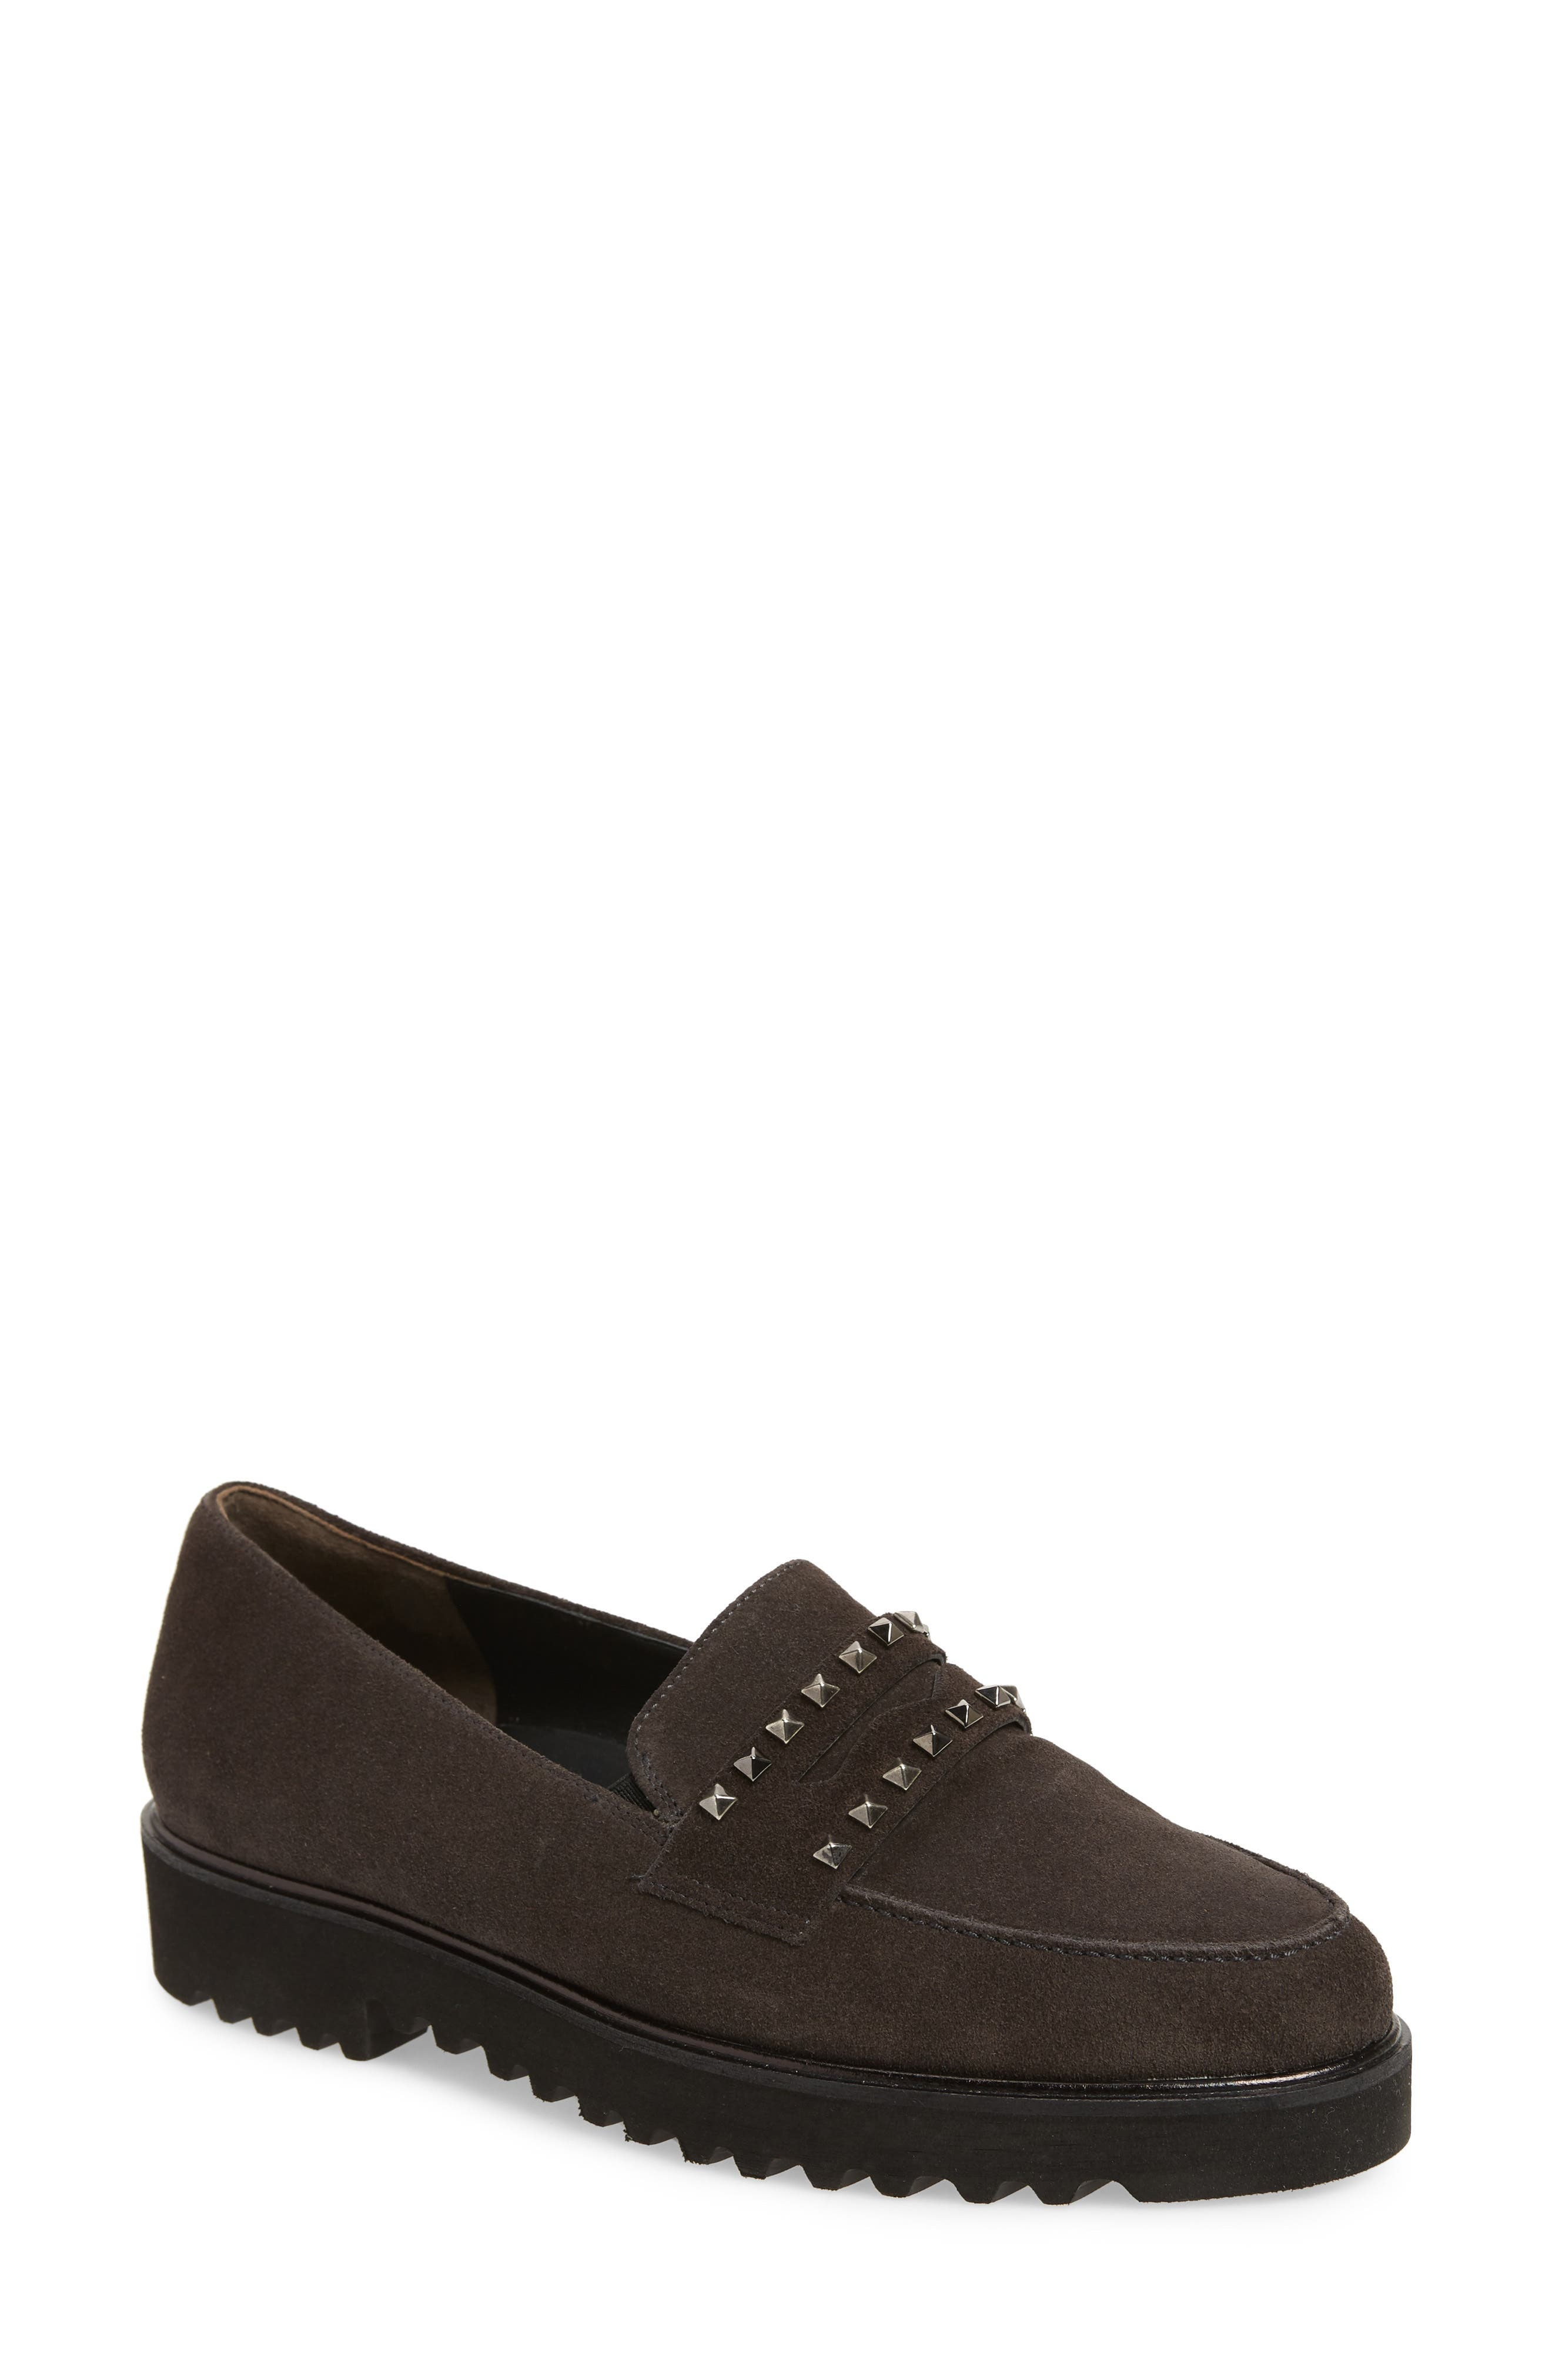 Sofia Loafer,                         Main,                         color, ANTHRACITE SUEDE